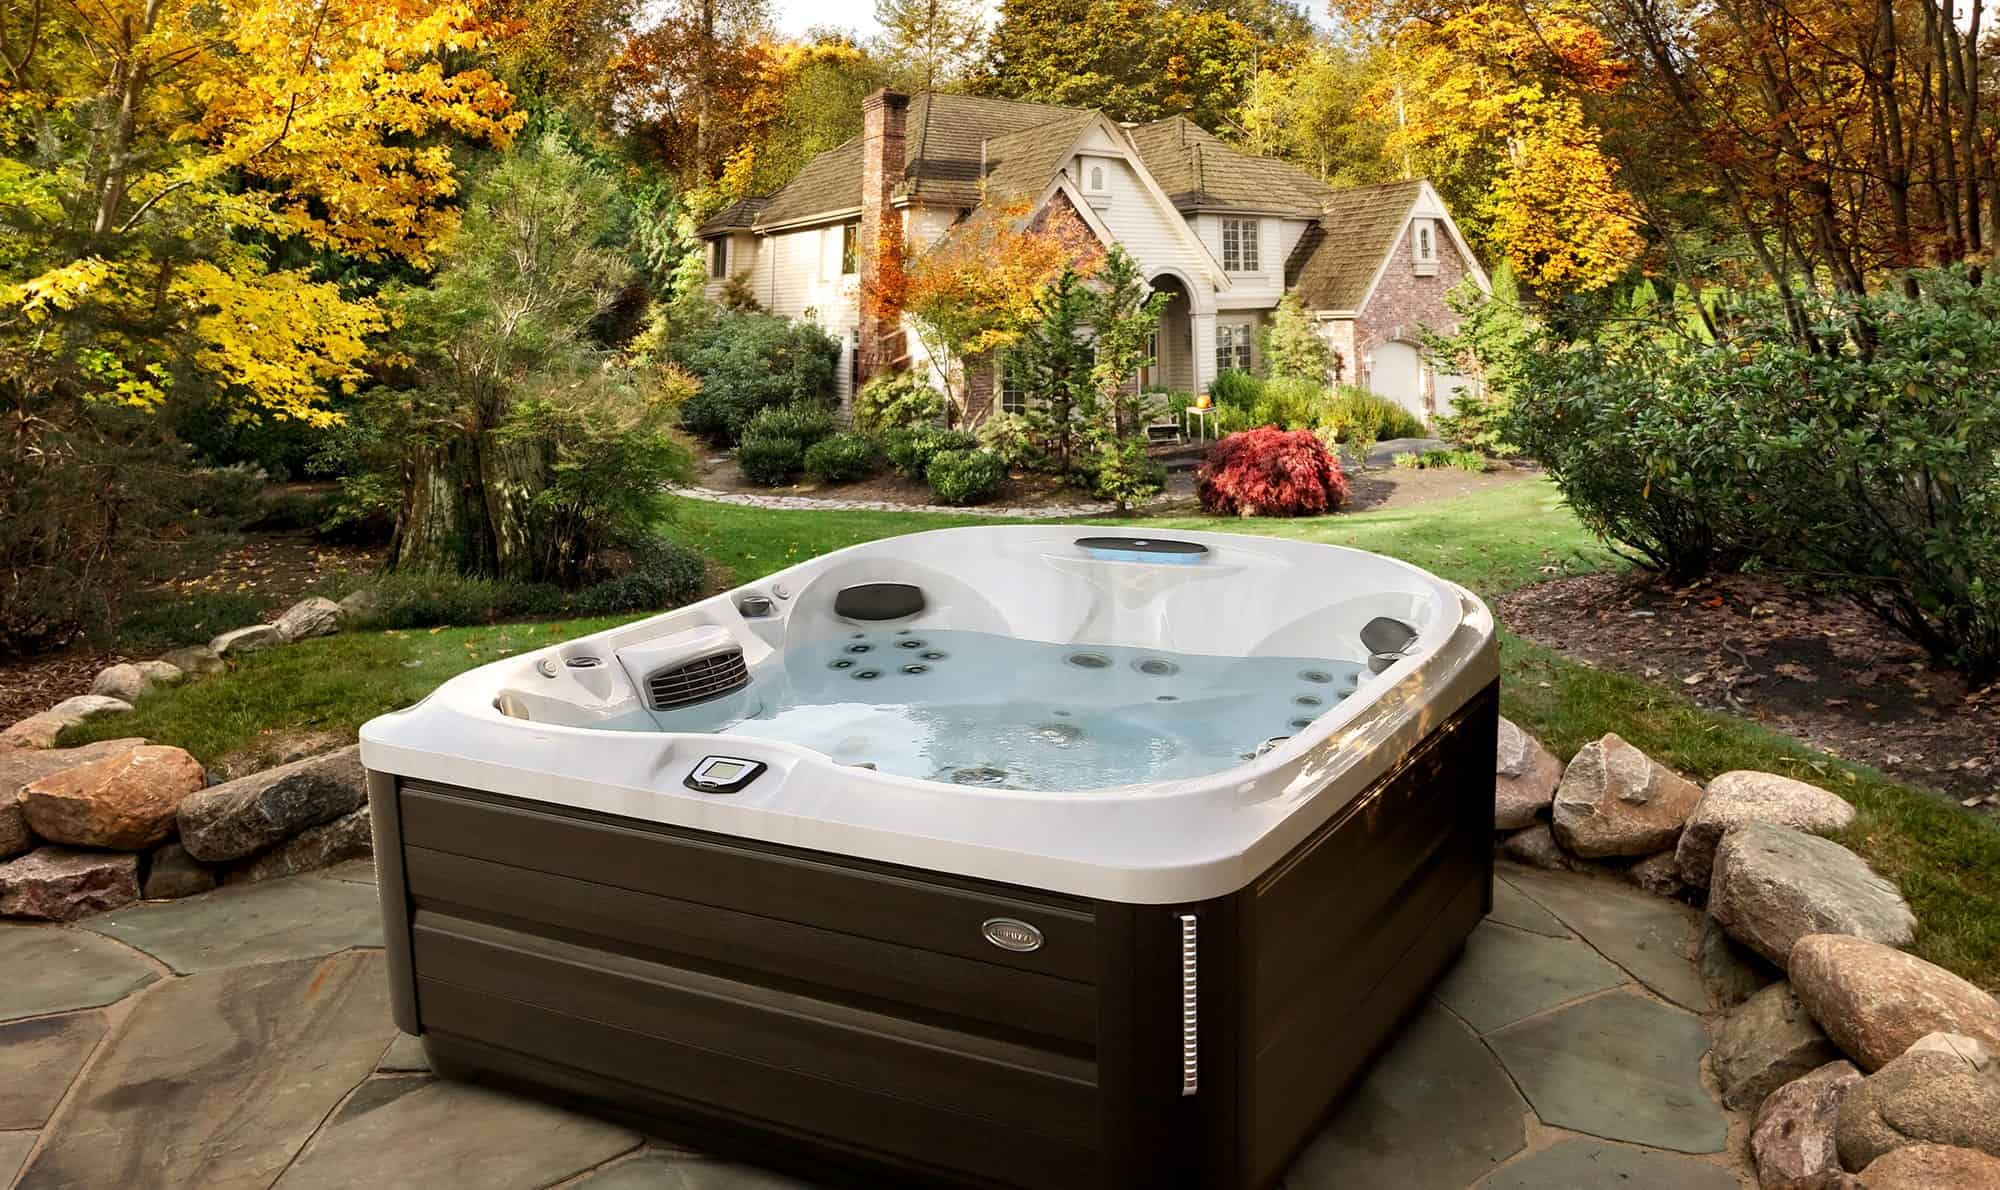 J-485 Jacuzzi Hot Tub Installation in Ontario